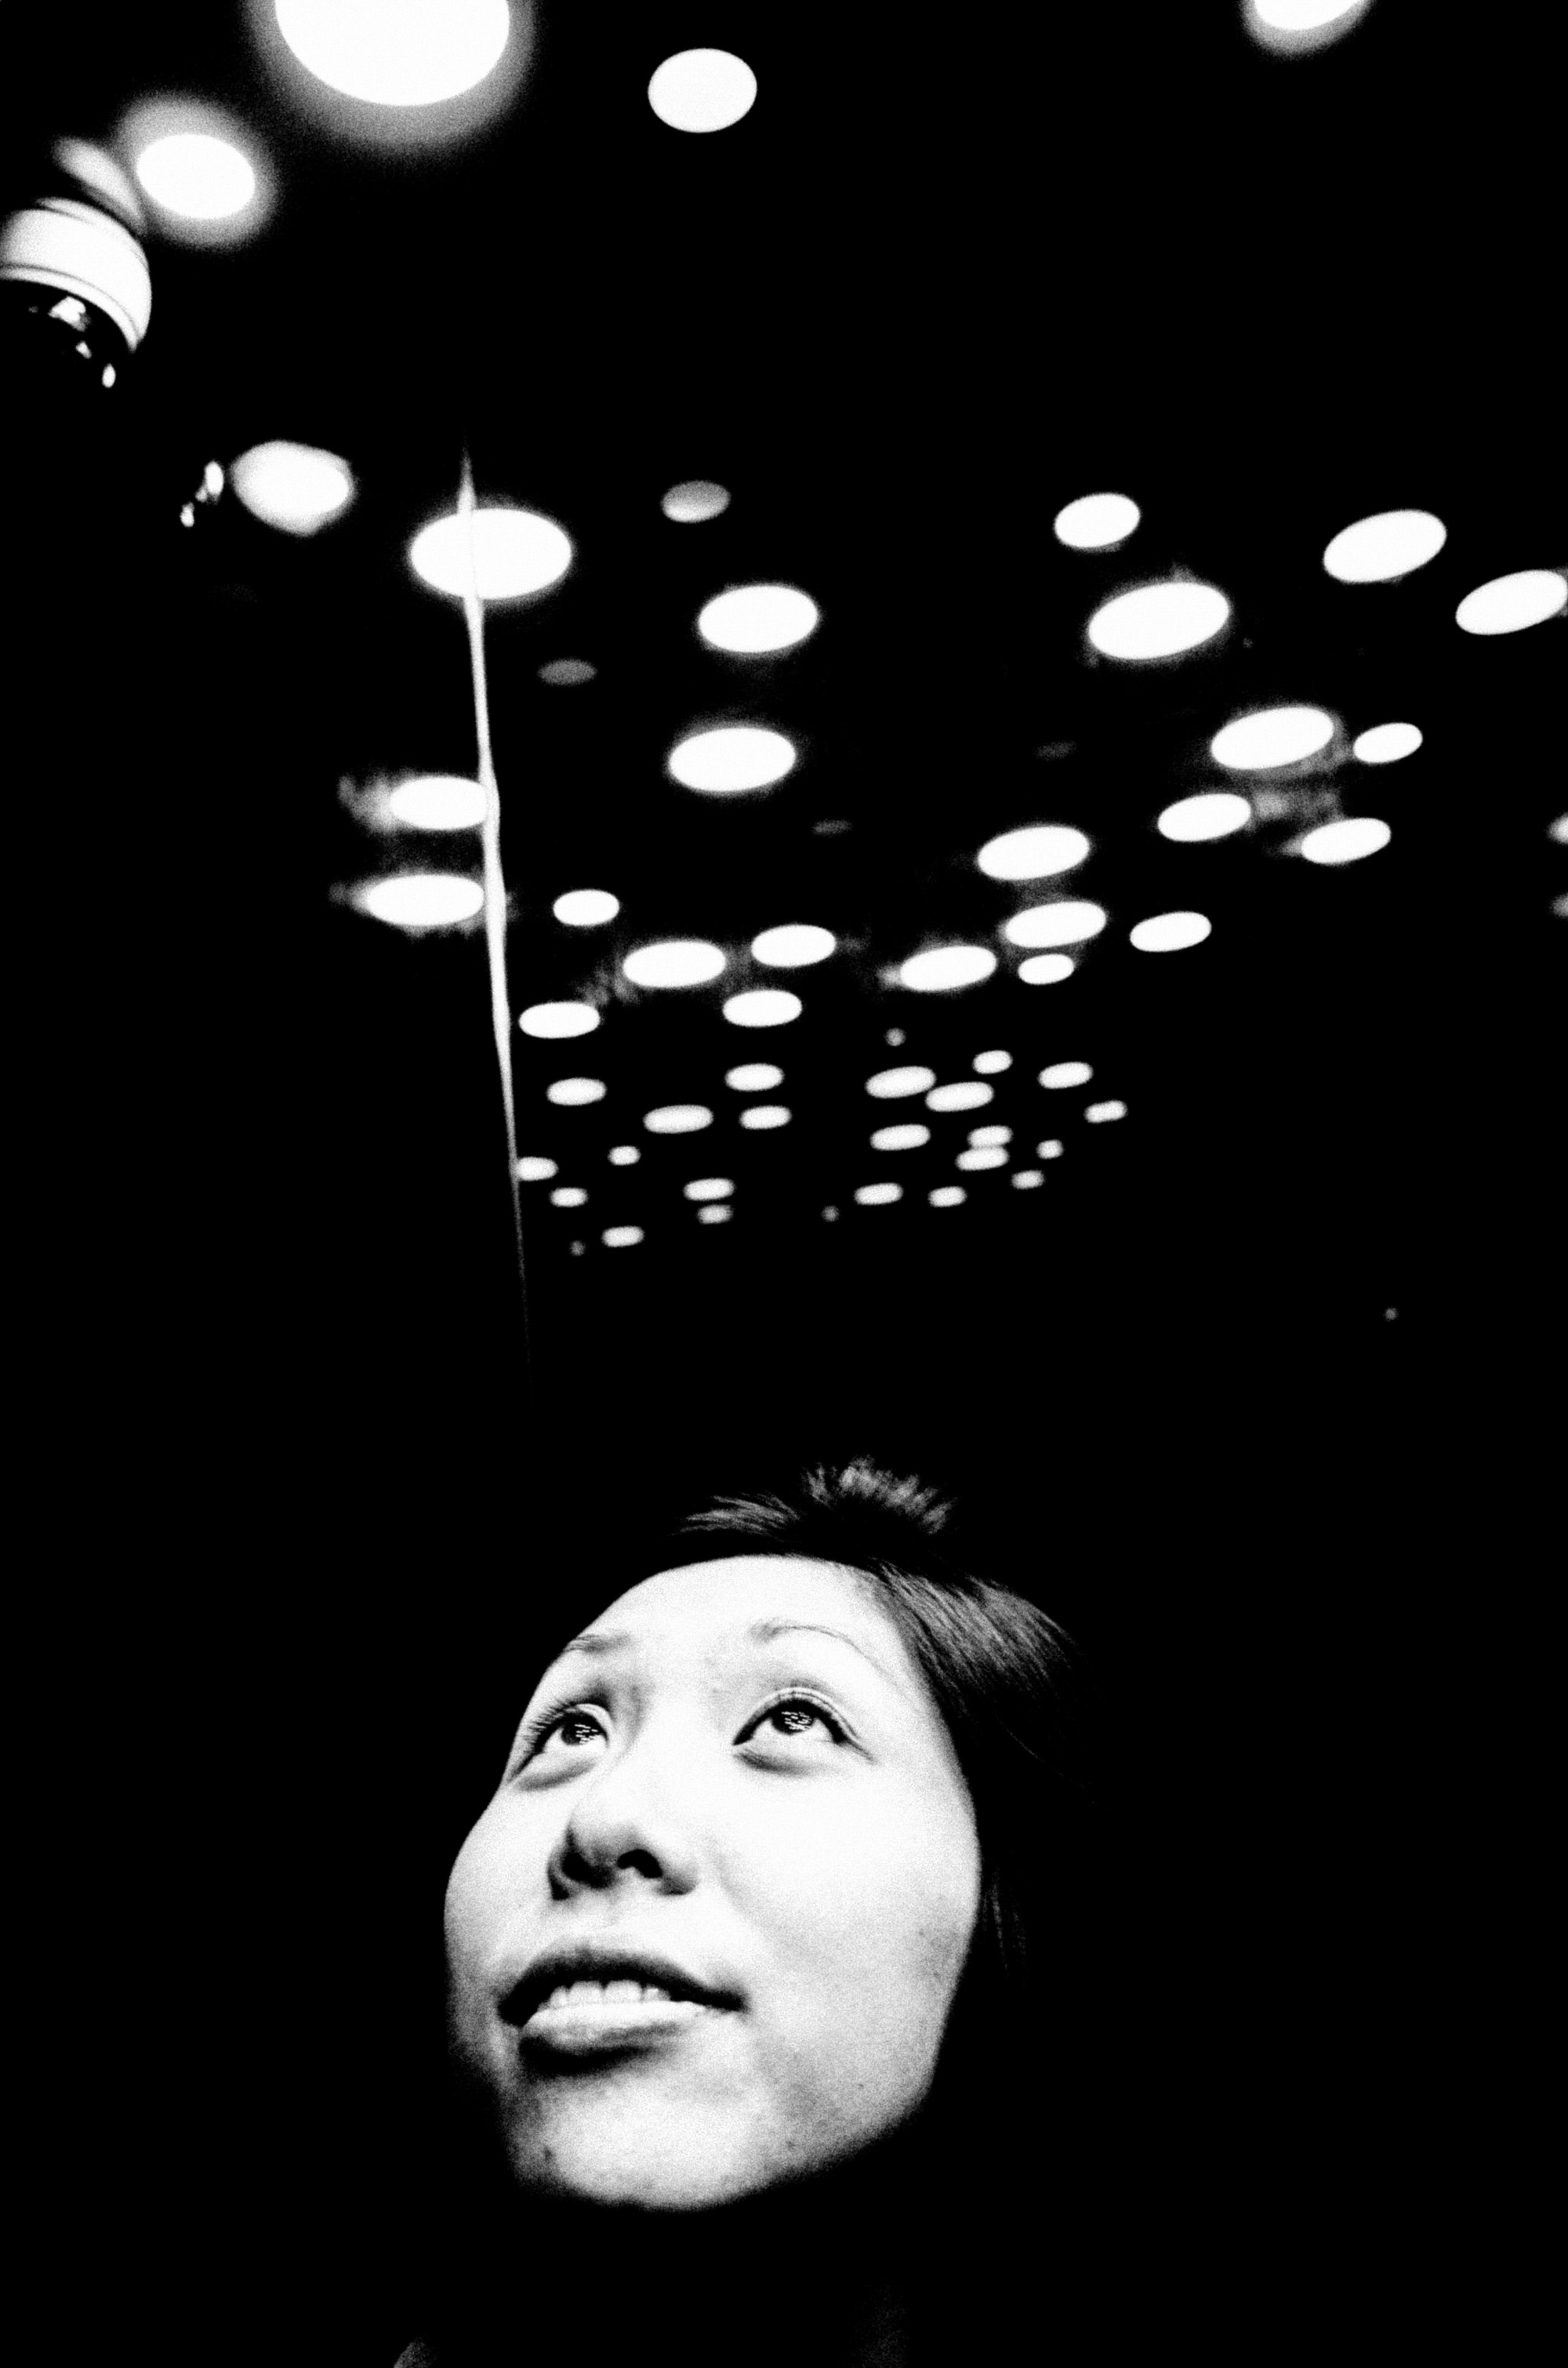 eric kim photography hanoi-0007367 cindy project elevator.jpg